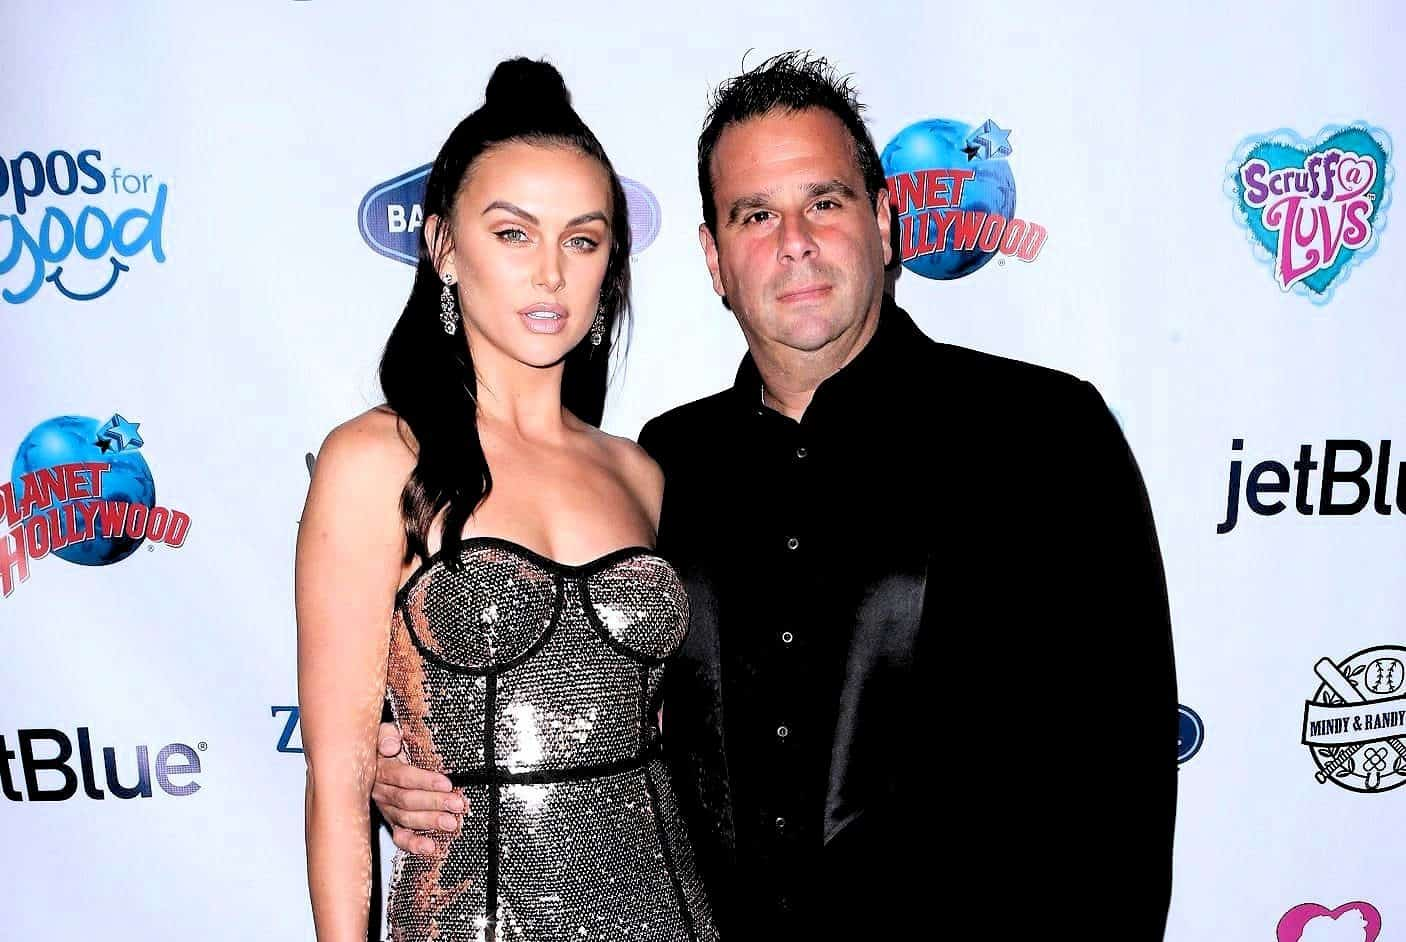 Vanderpump Rules' Lala Kent Reveals Biggest Fight with Randall Emmett and Admits She Considered Moving Back to Utah, Plus She Explains How She Deals With Negativity